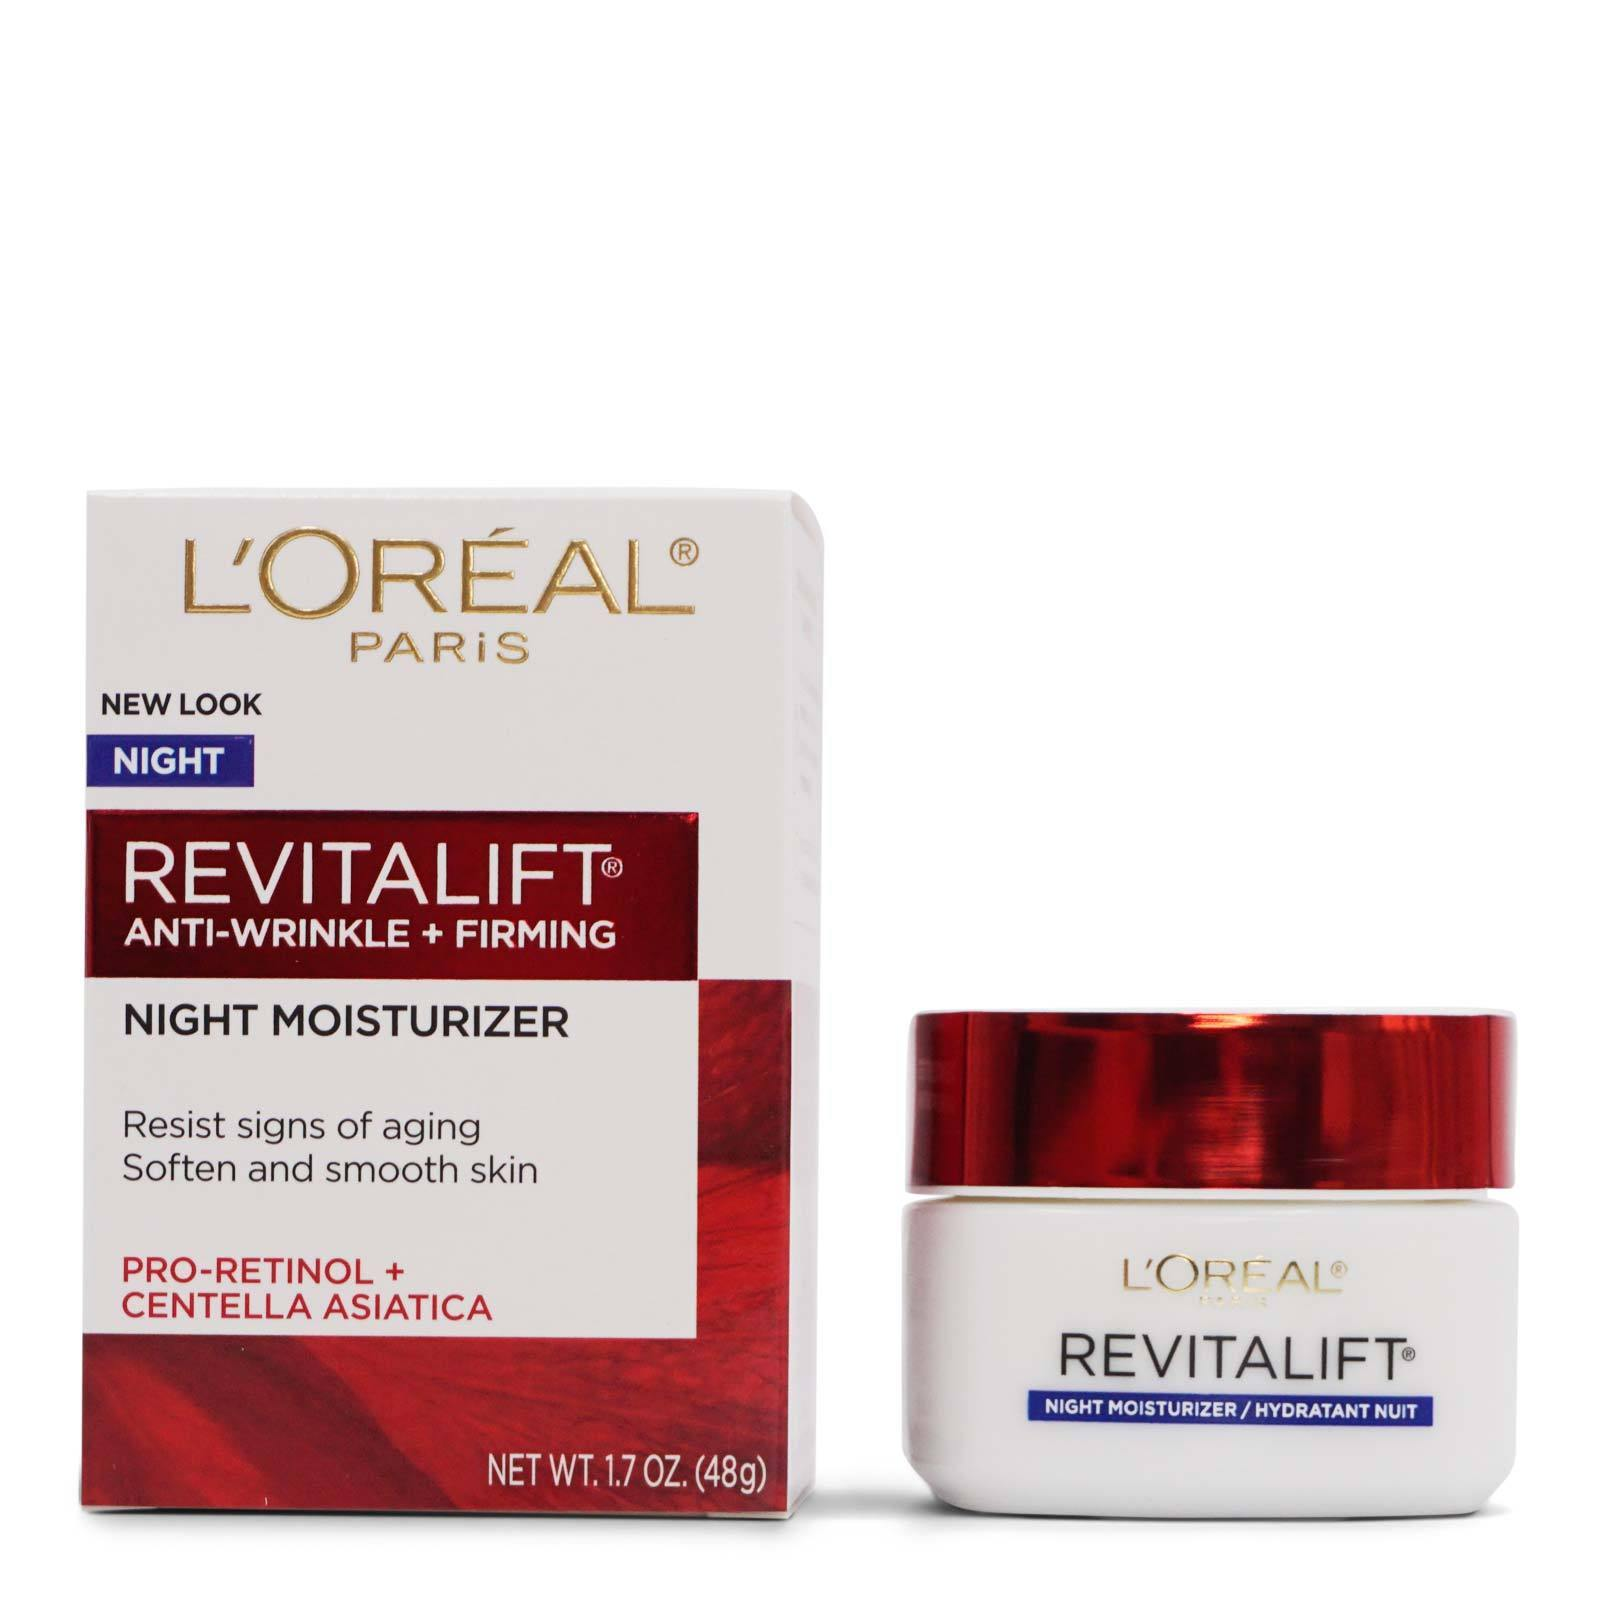 USA Wholesale | L'Oreal PARiS Revitalift Night Moisturizer (24/cs)